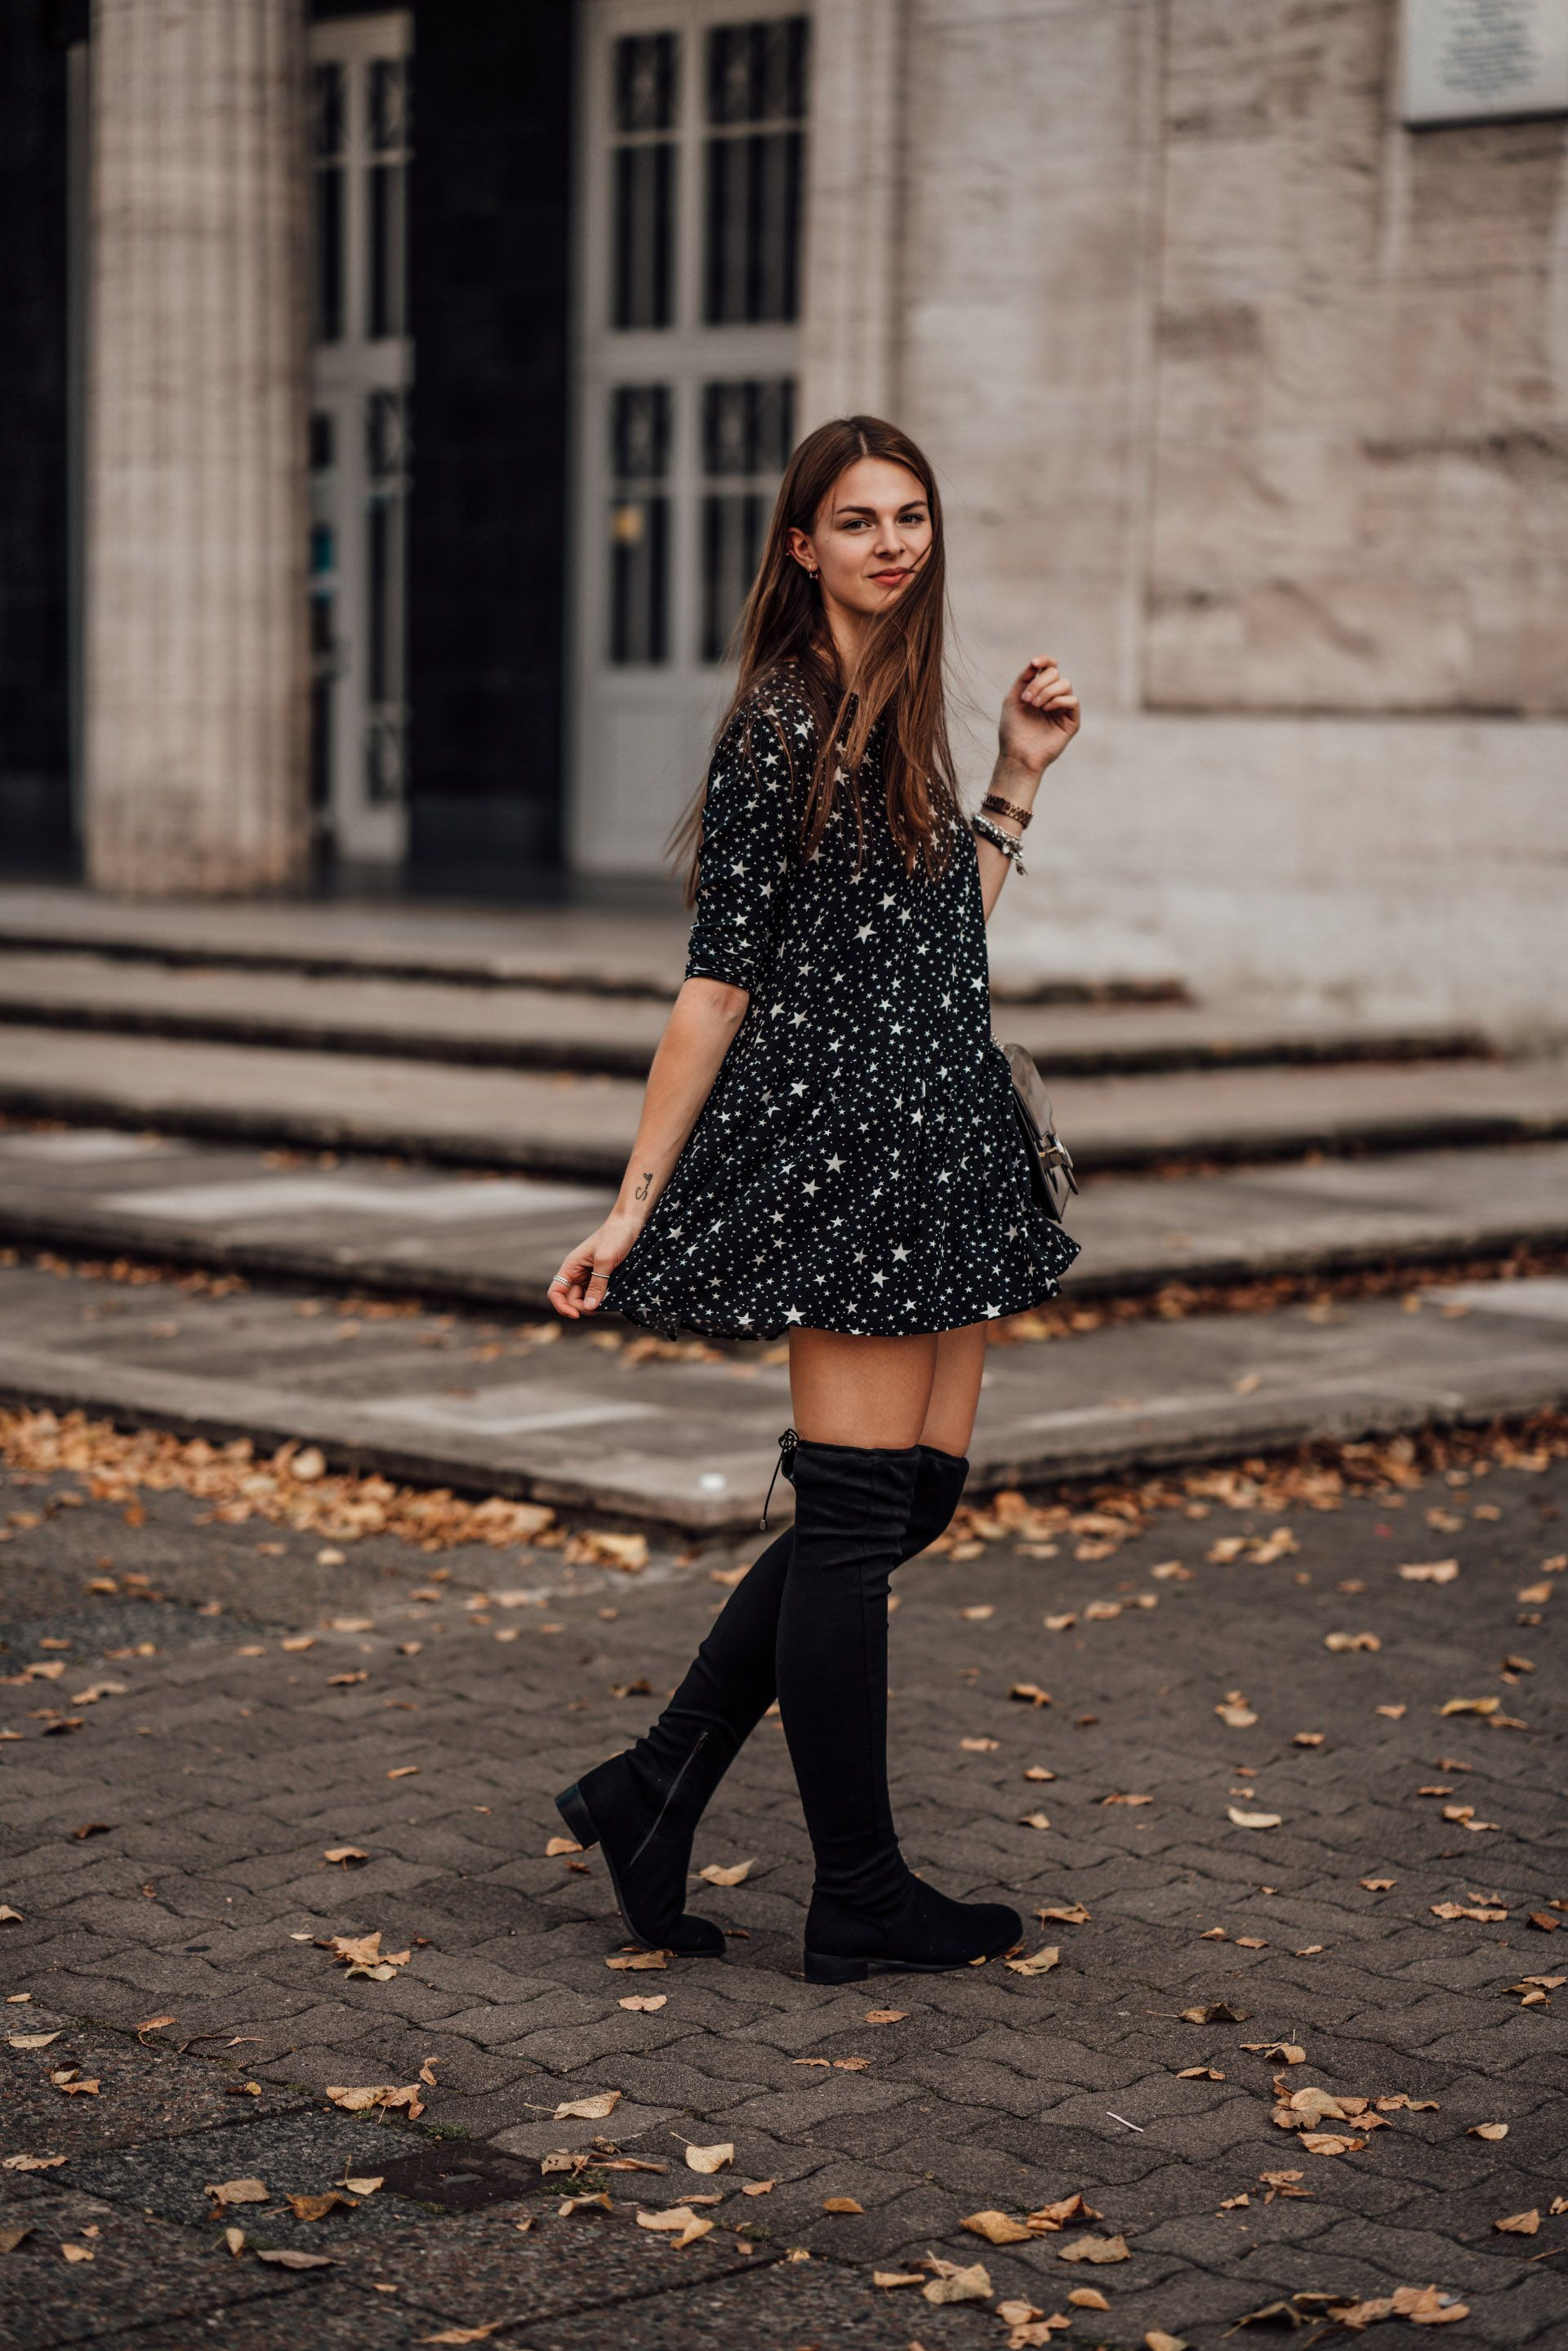 foto ShoesFirst: The autumn trend edit